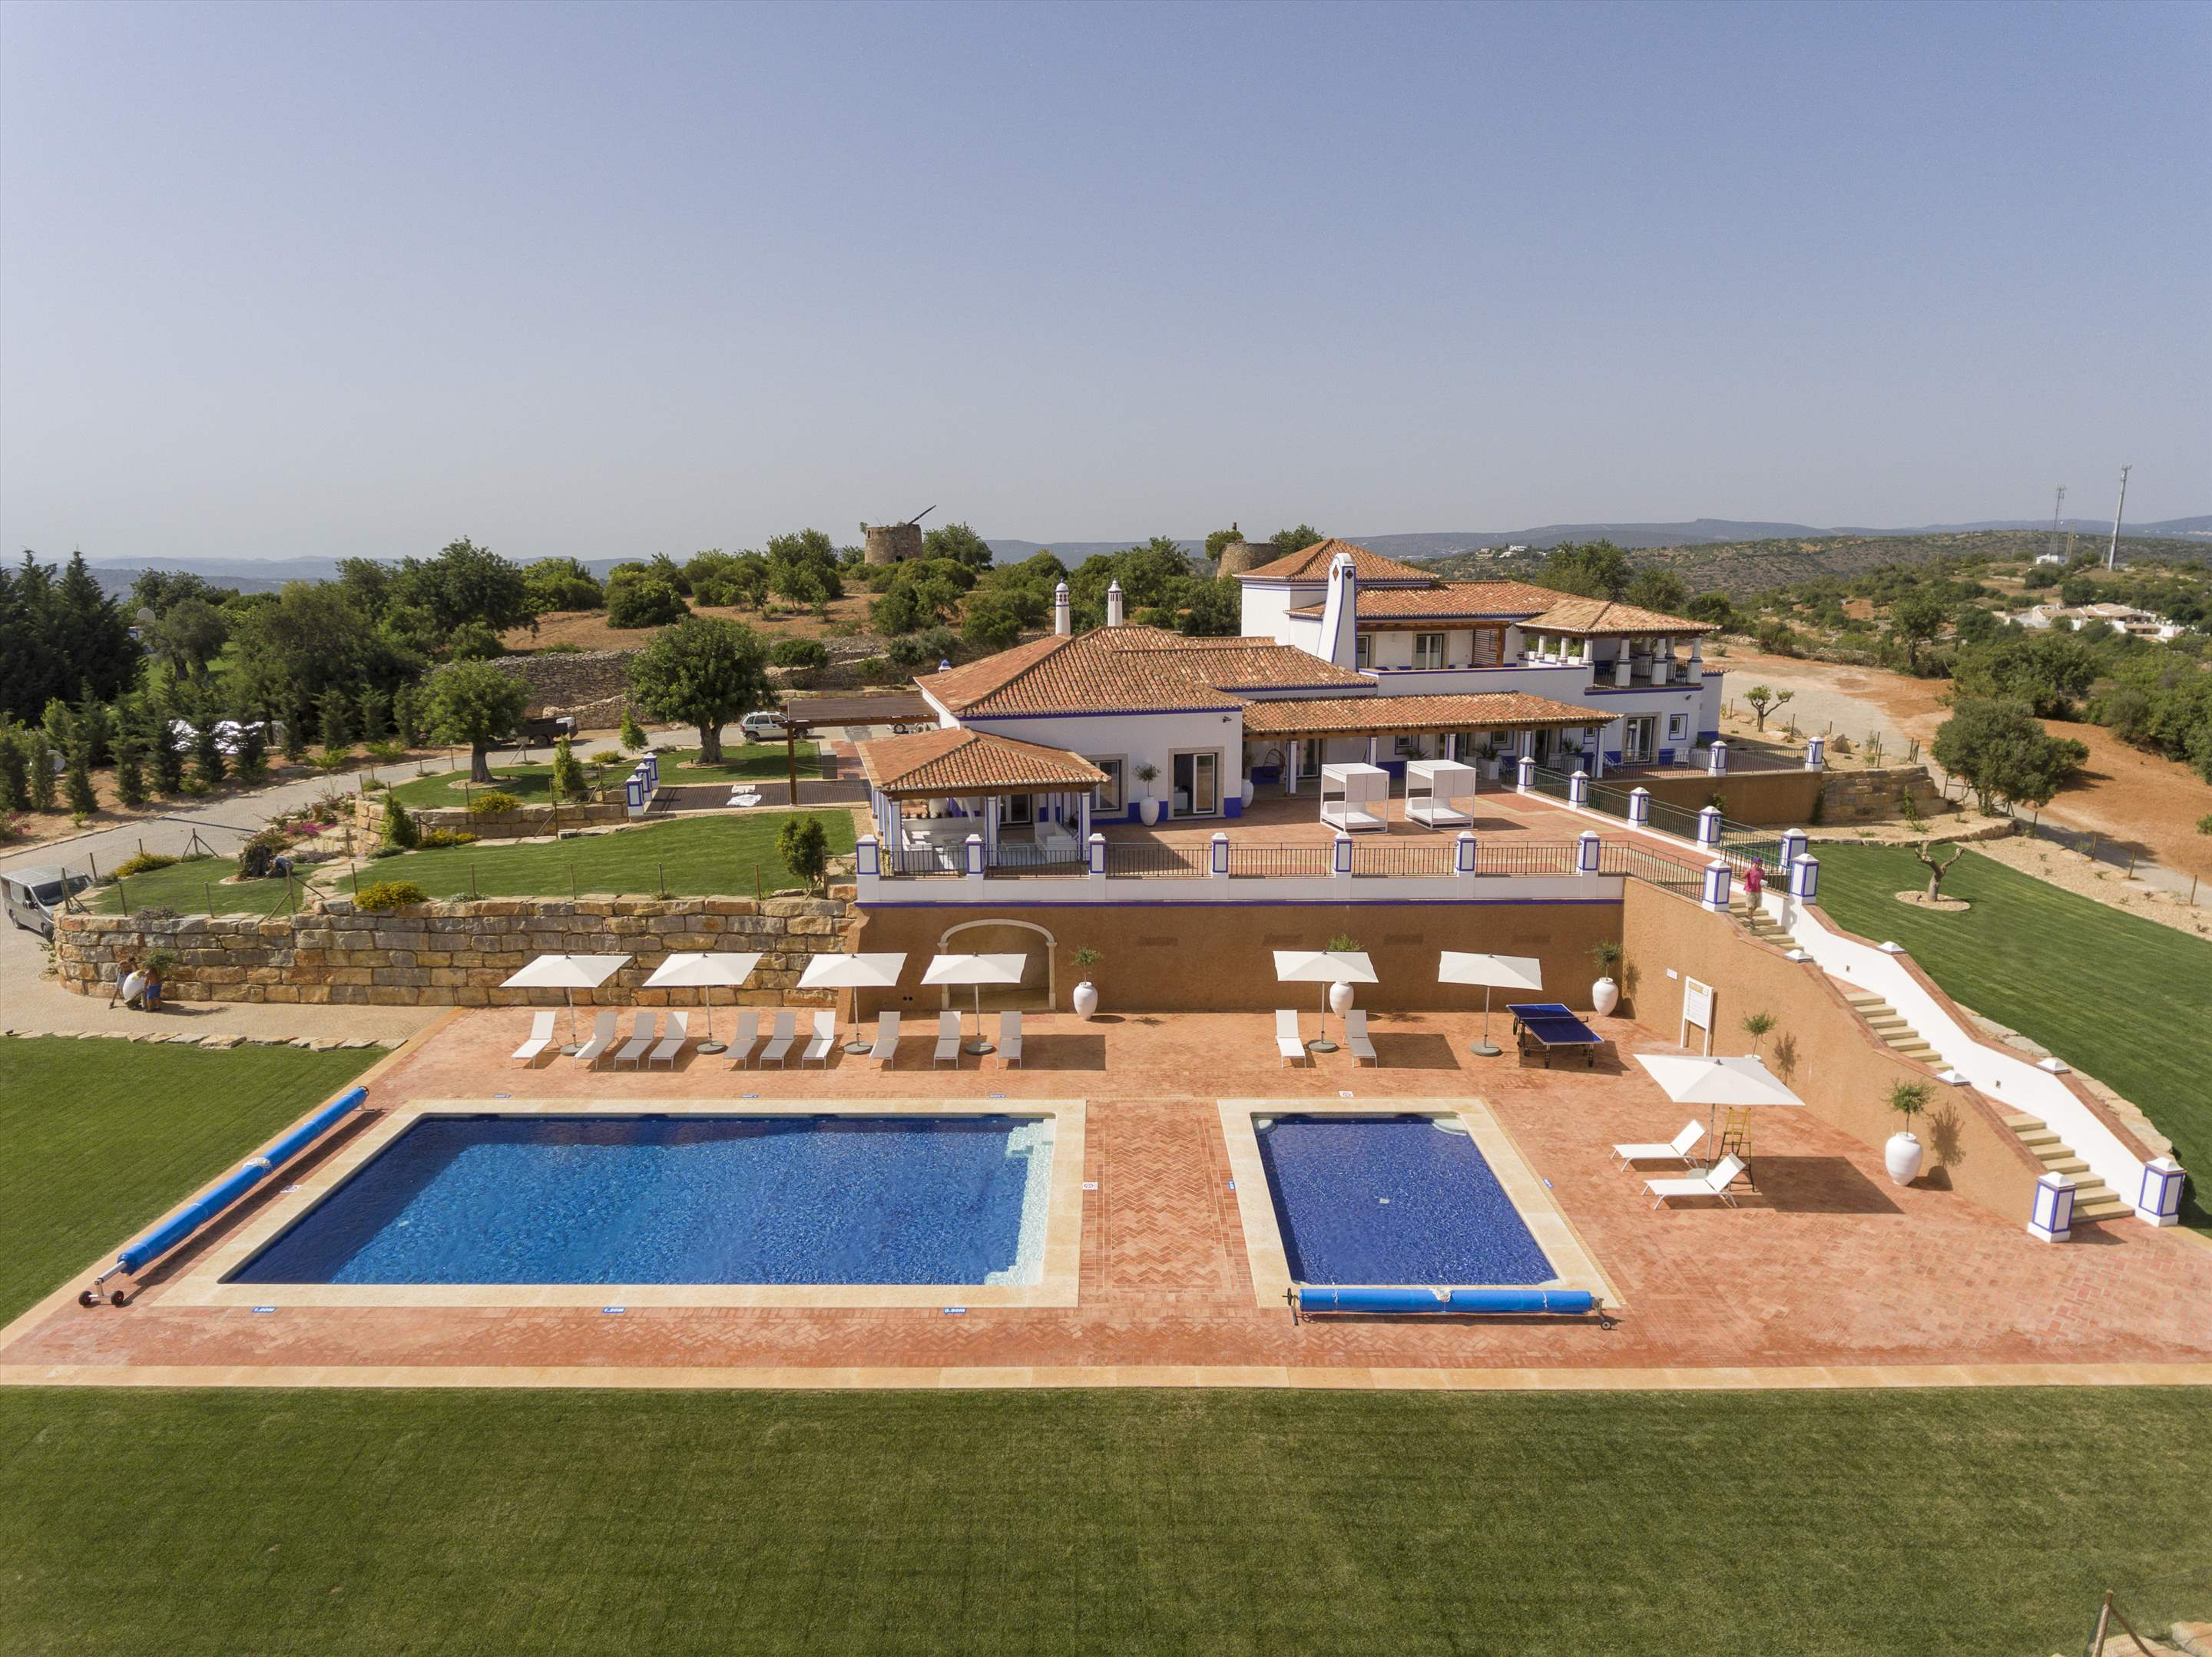 Casa da Musica , 7 bedroom villa in Vilamoura Area, Algarve